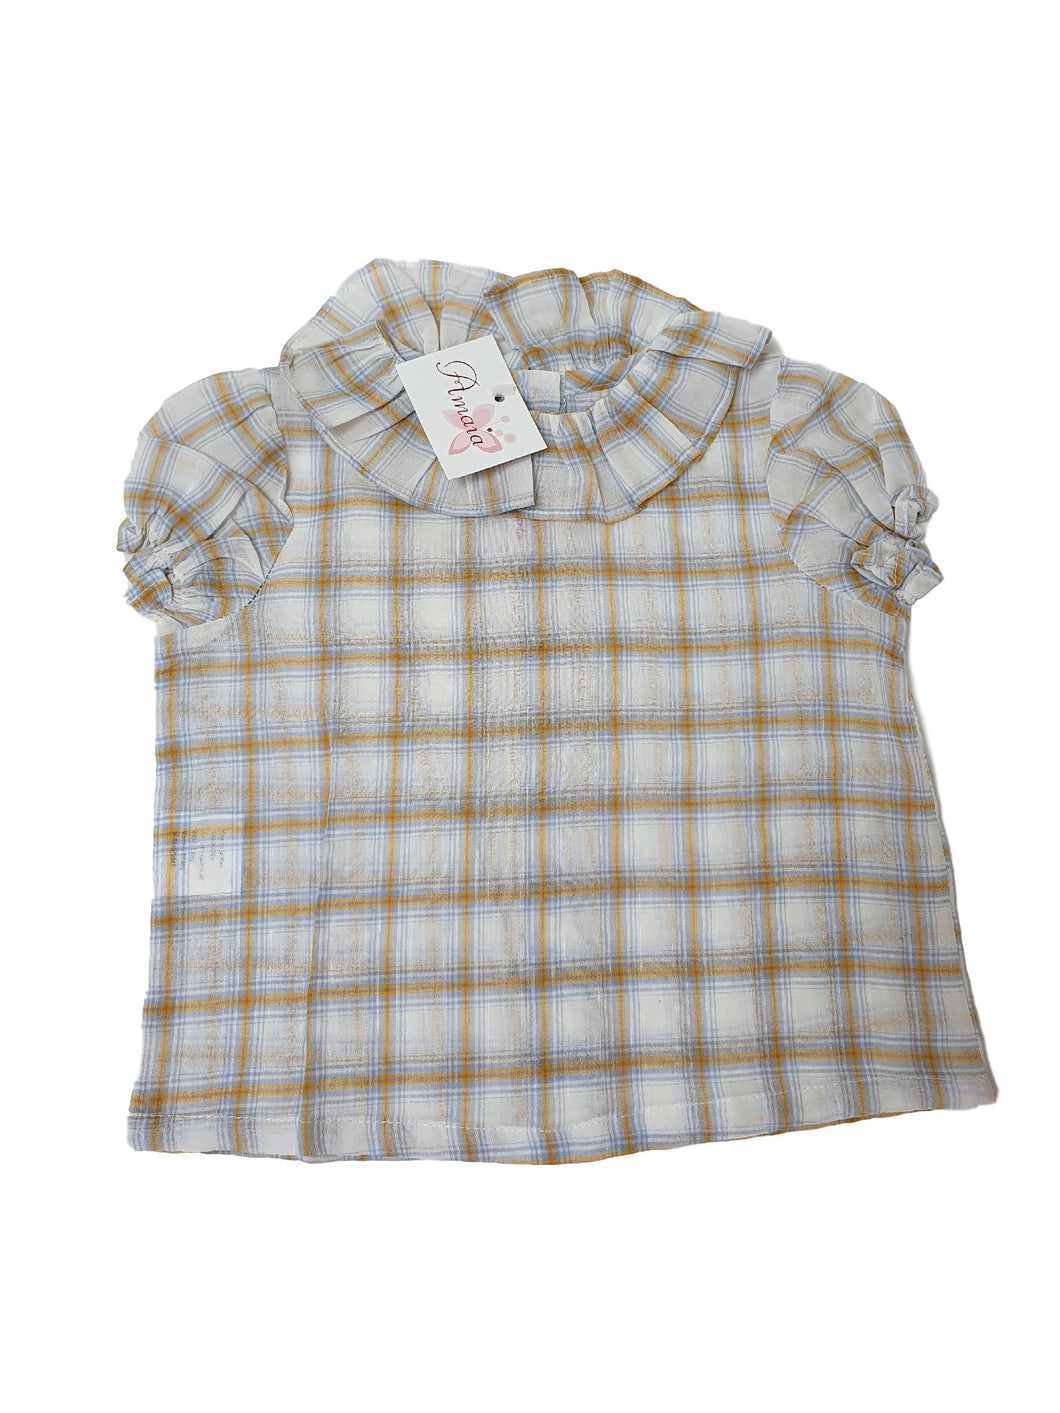 AMAIA outlet girl blouse 12m and 2yo